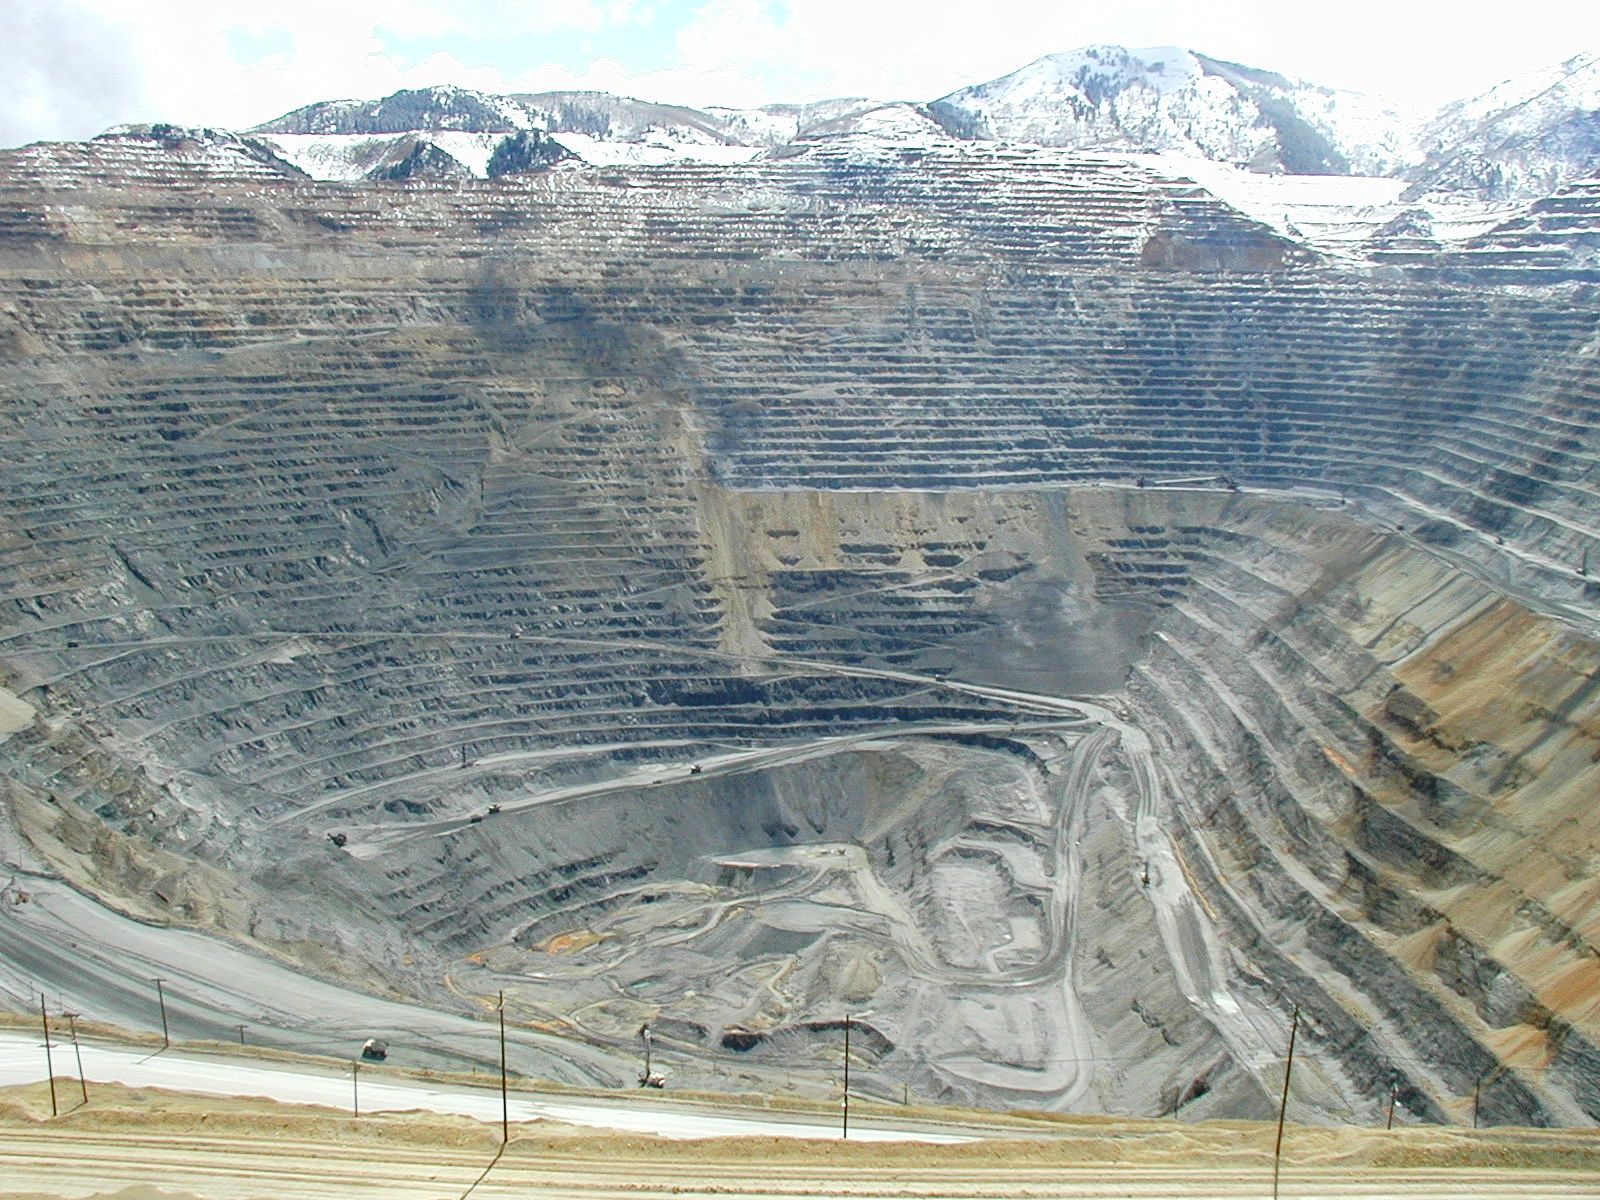 - Fig. 1. Rio Tinto's Bingham Canyon Mine in Utah—0.6 miles deep, 2.5 miles wide, and covering 1,900 acres—is the largest open pit mine in North America and is still expanding.Source: Wikipedia.